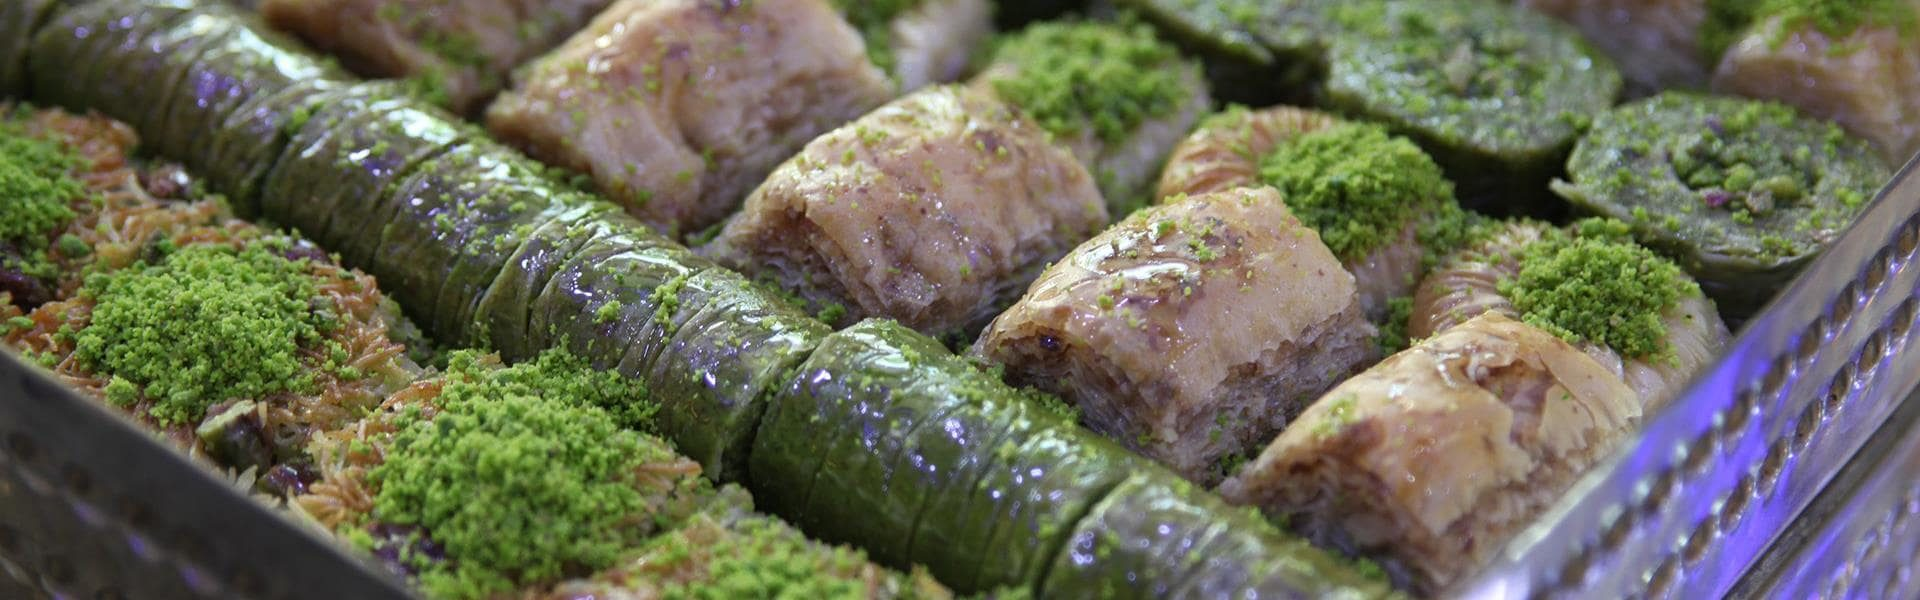 the-real-story-of-sweets-beyond-baklava-hero-image